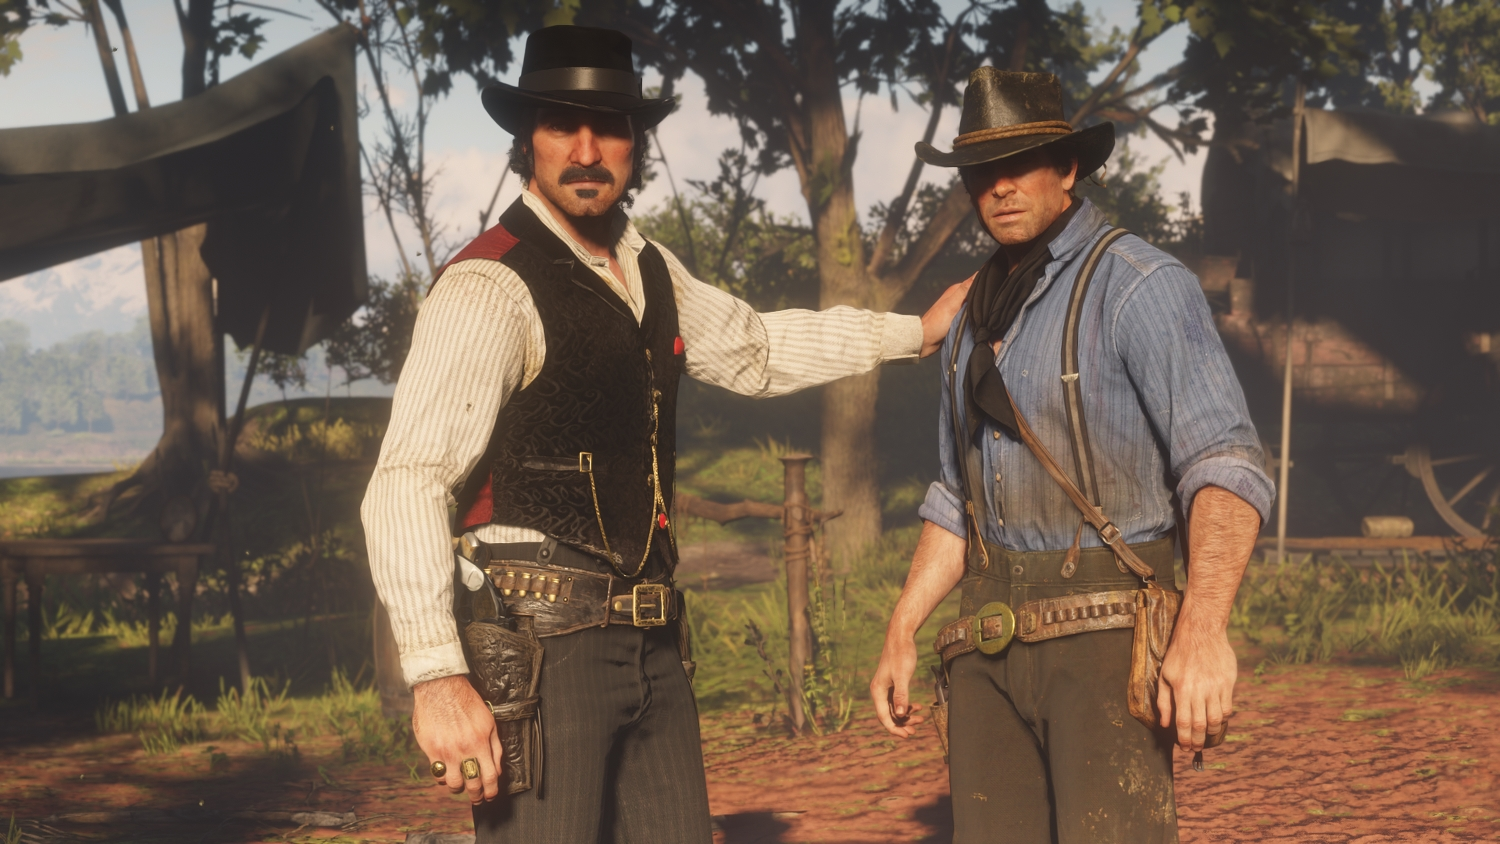 Rockstar Games accused of being 'misleading' as real-life Pinkertons respond to Red Dead Redemption II lawsuit complaint